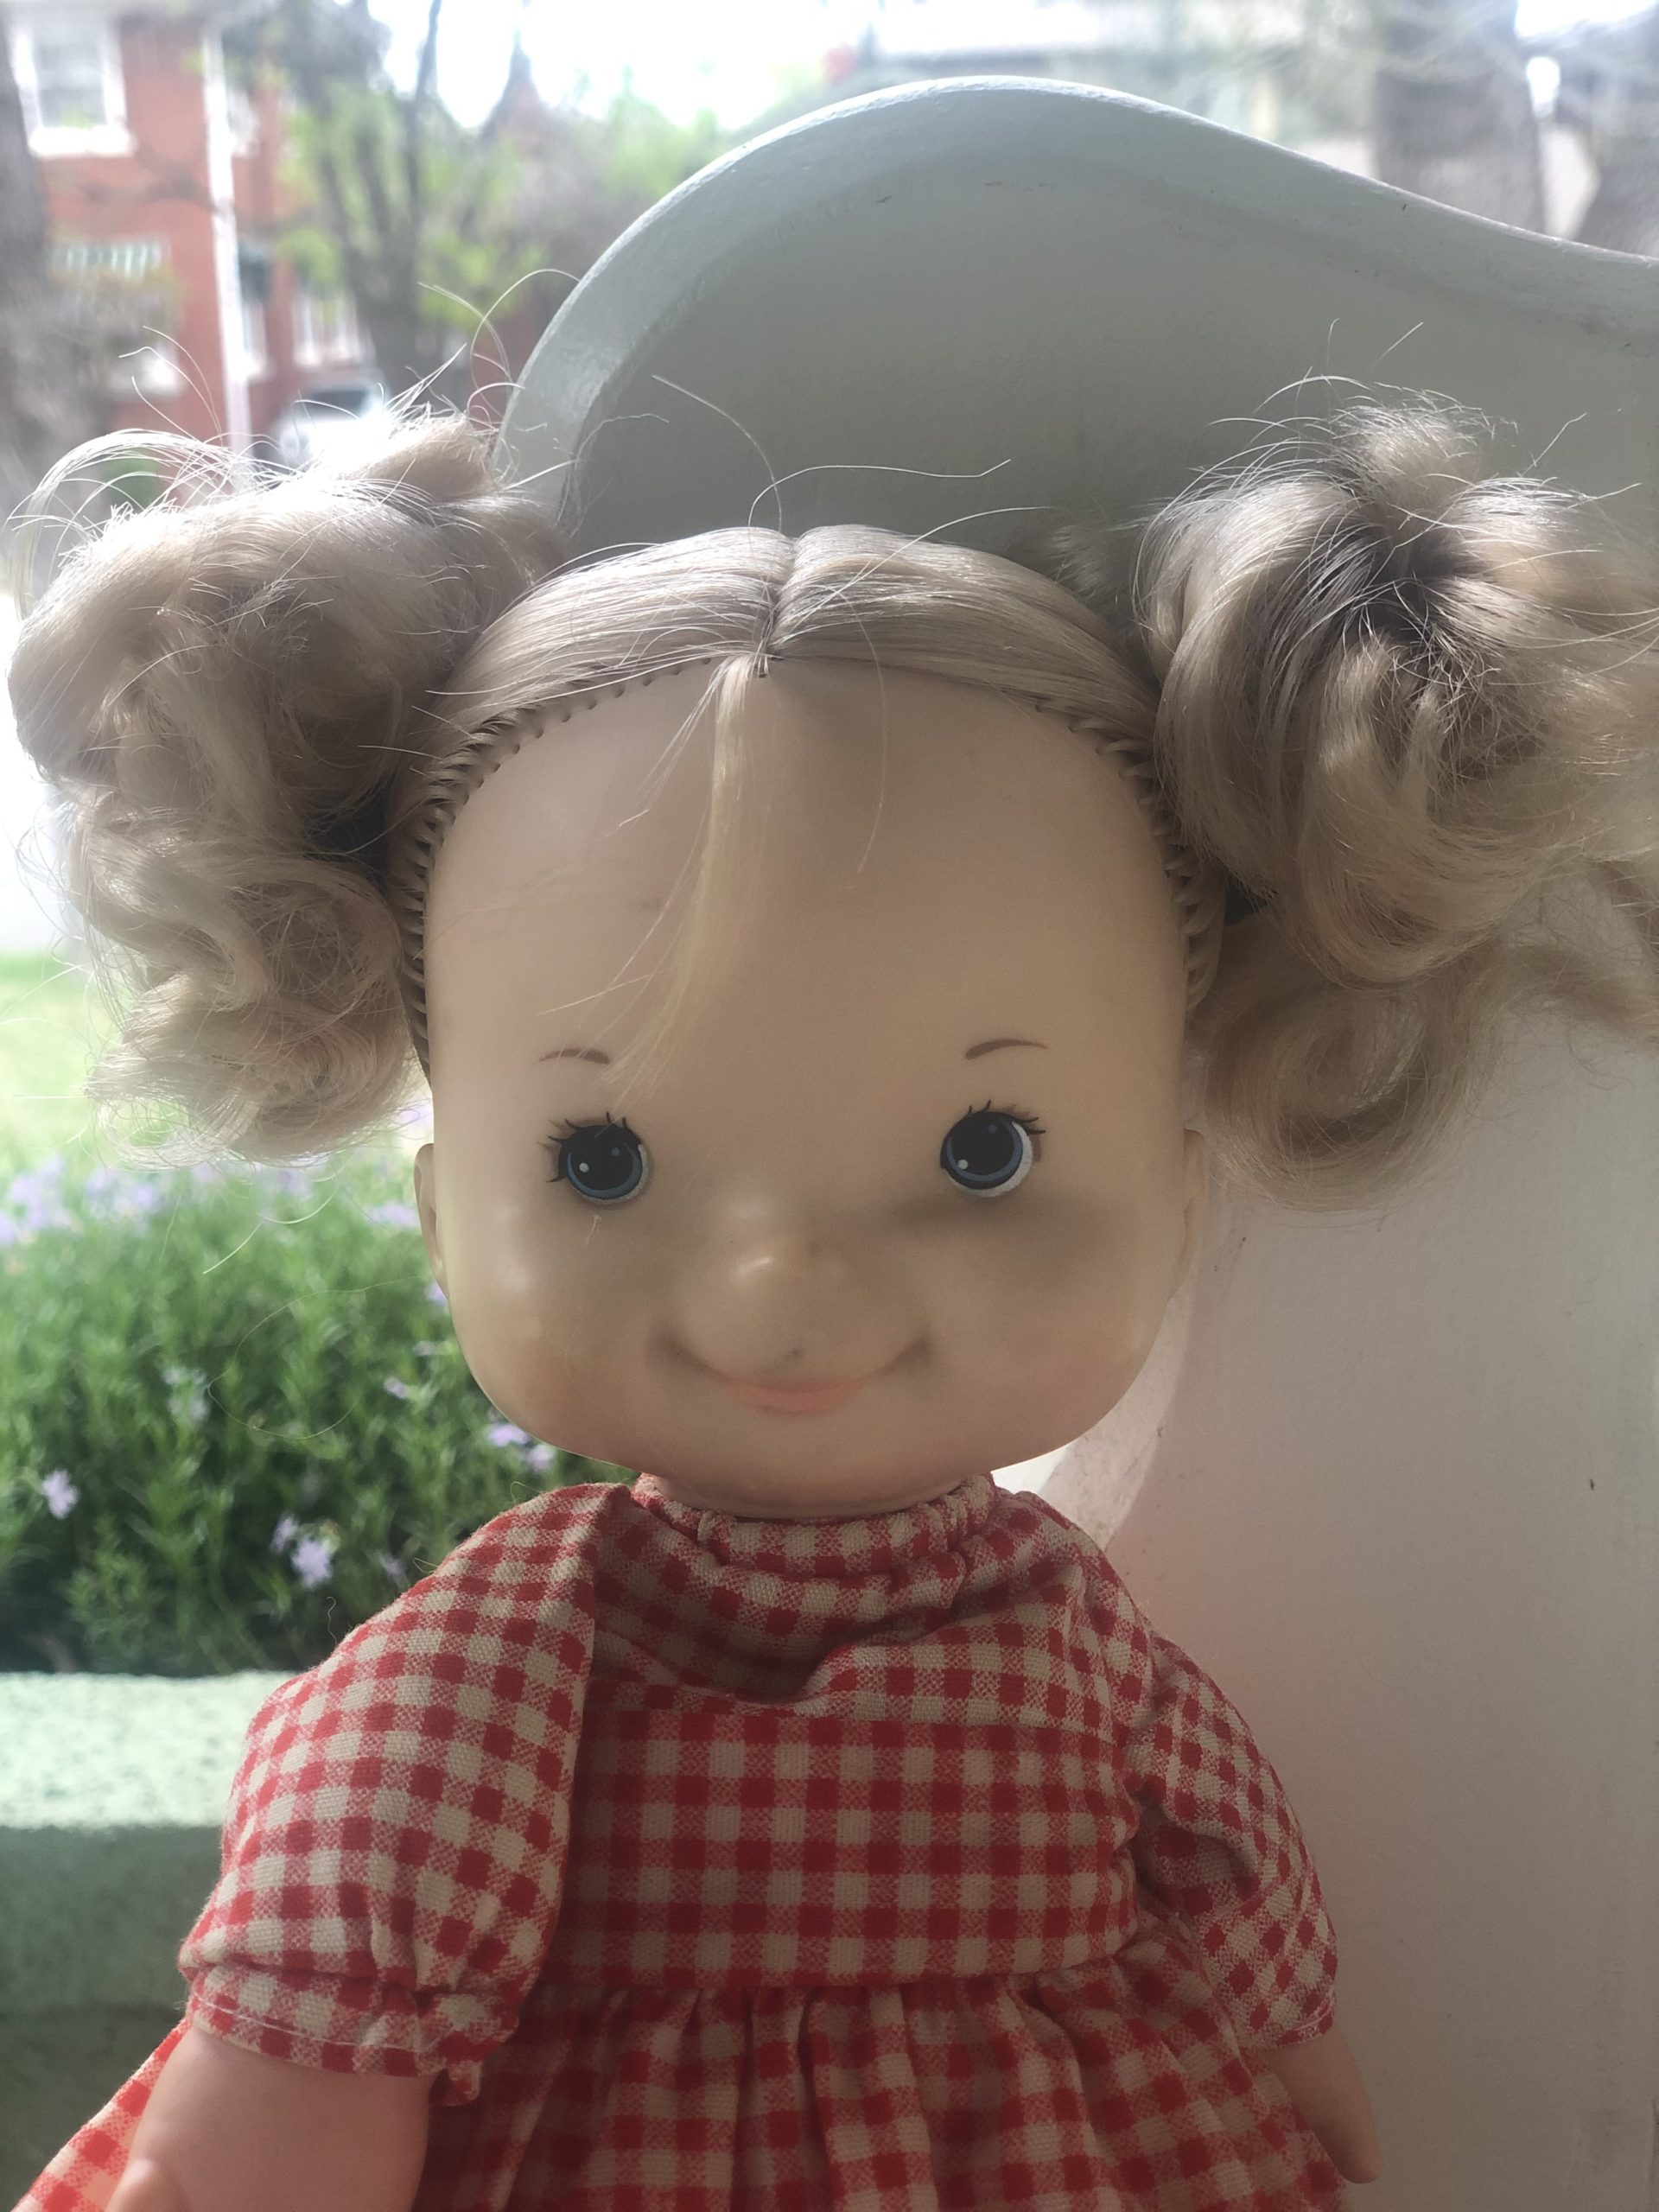 Fisher Price My Jenny Doll - With Ponytails